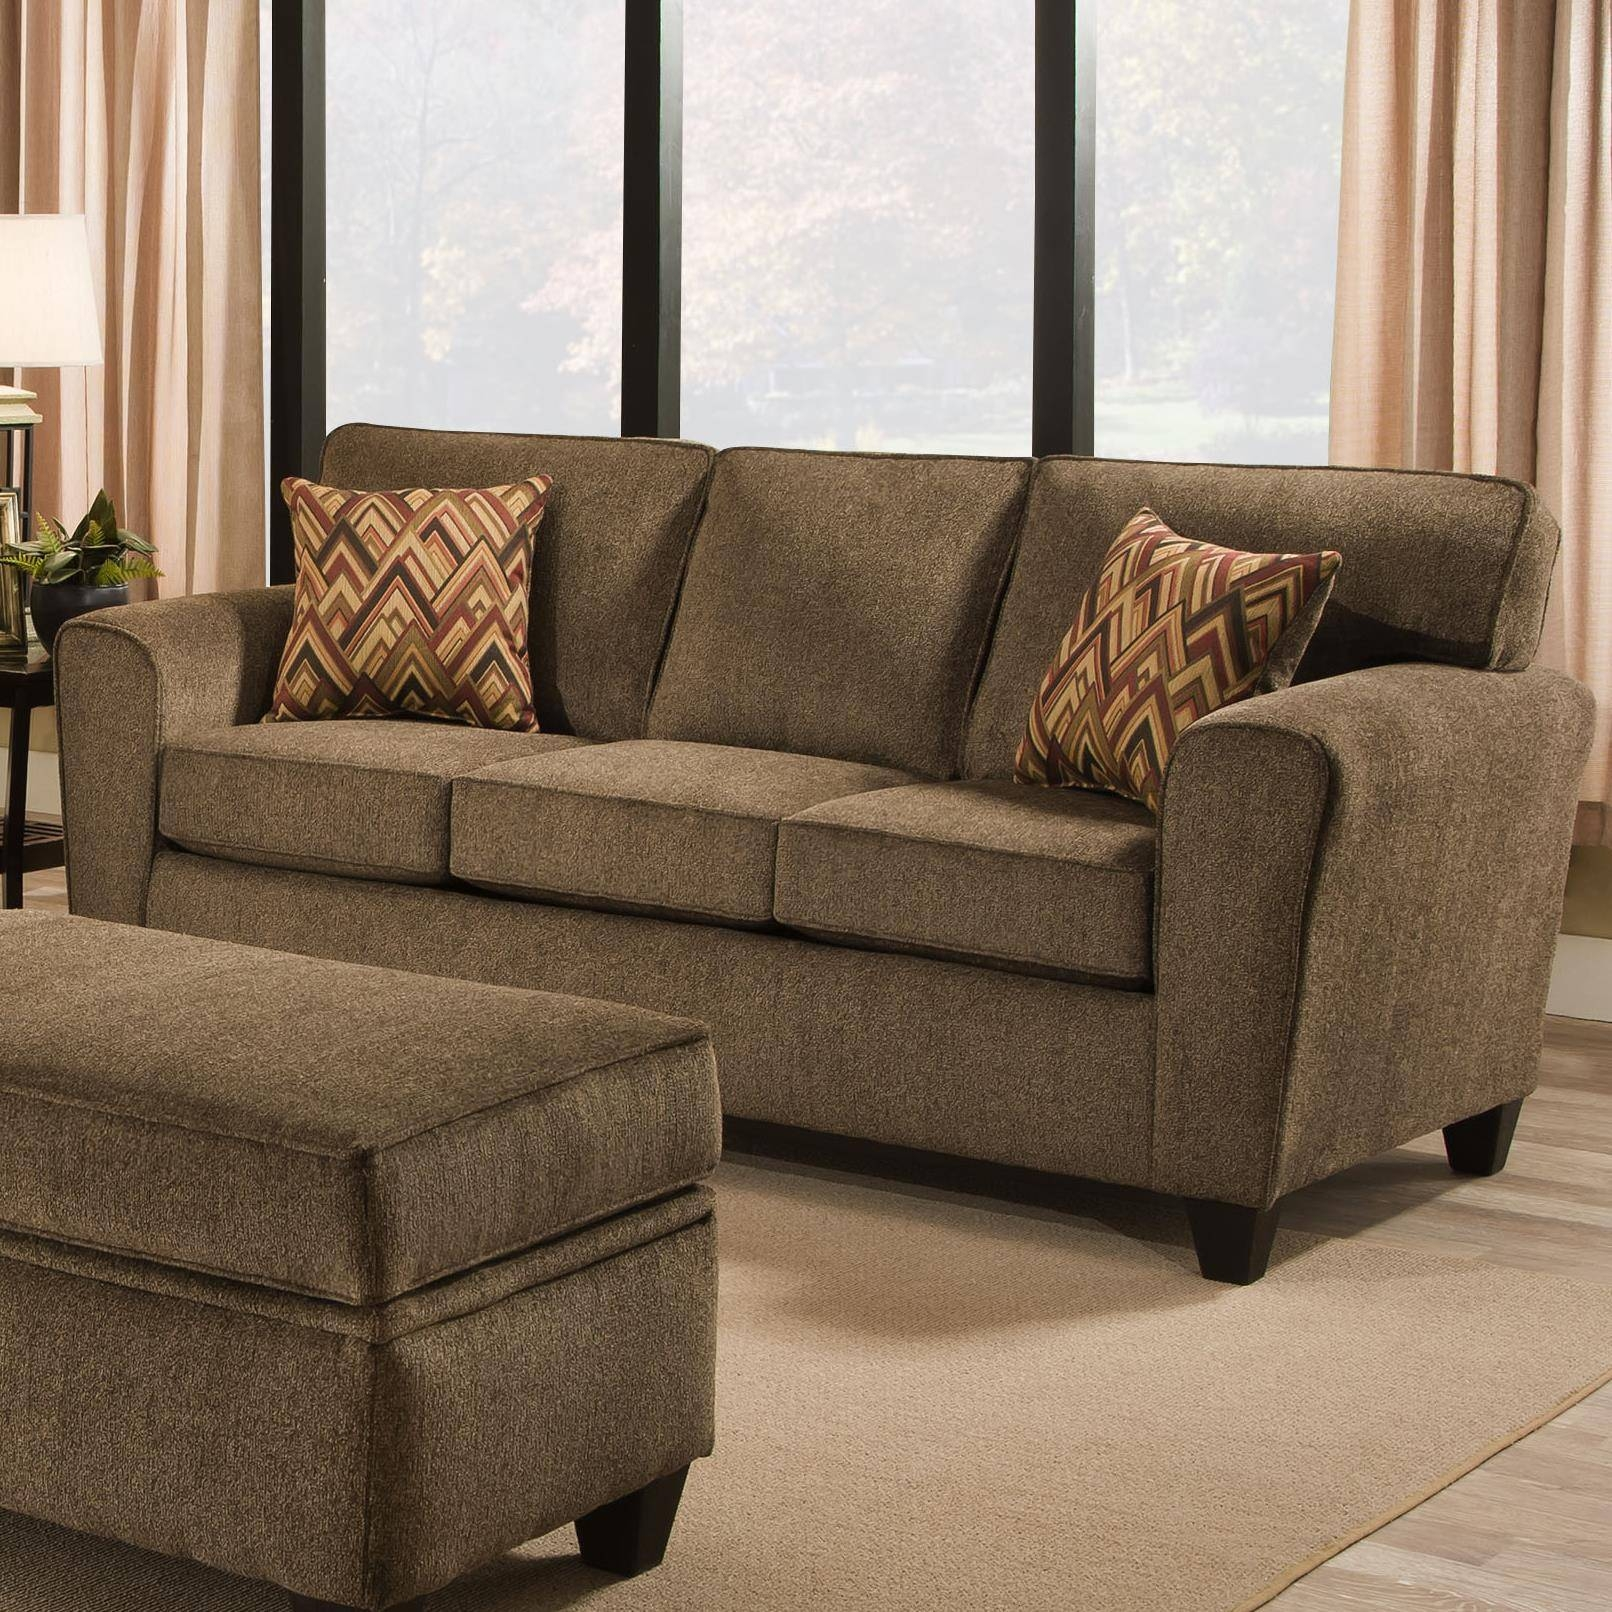 30 Best Craigslist Sectional Sofa